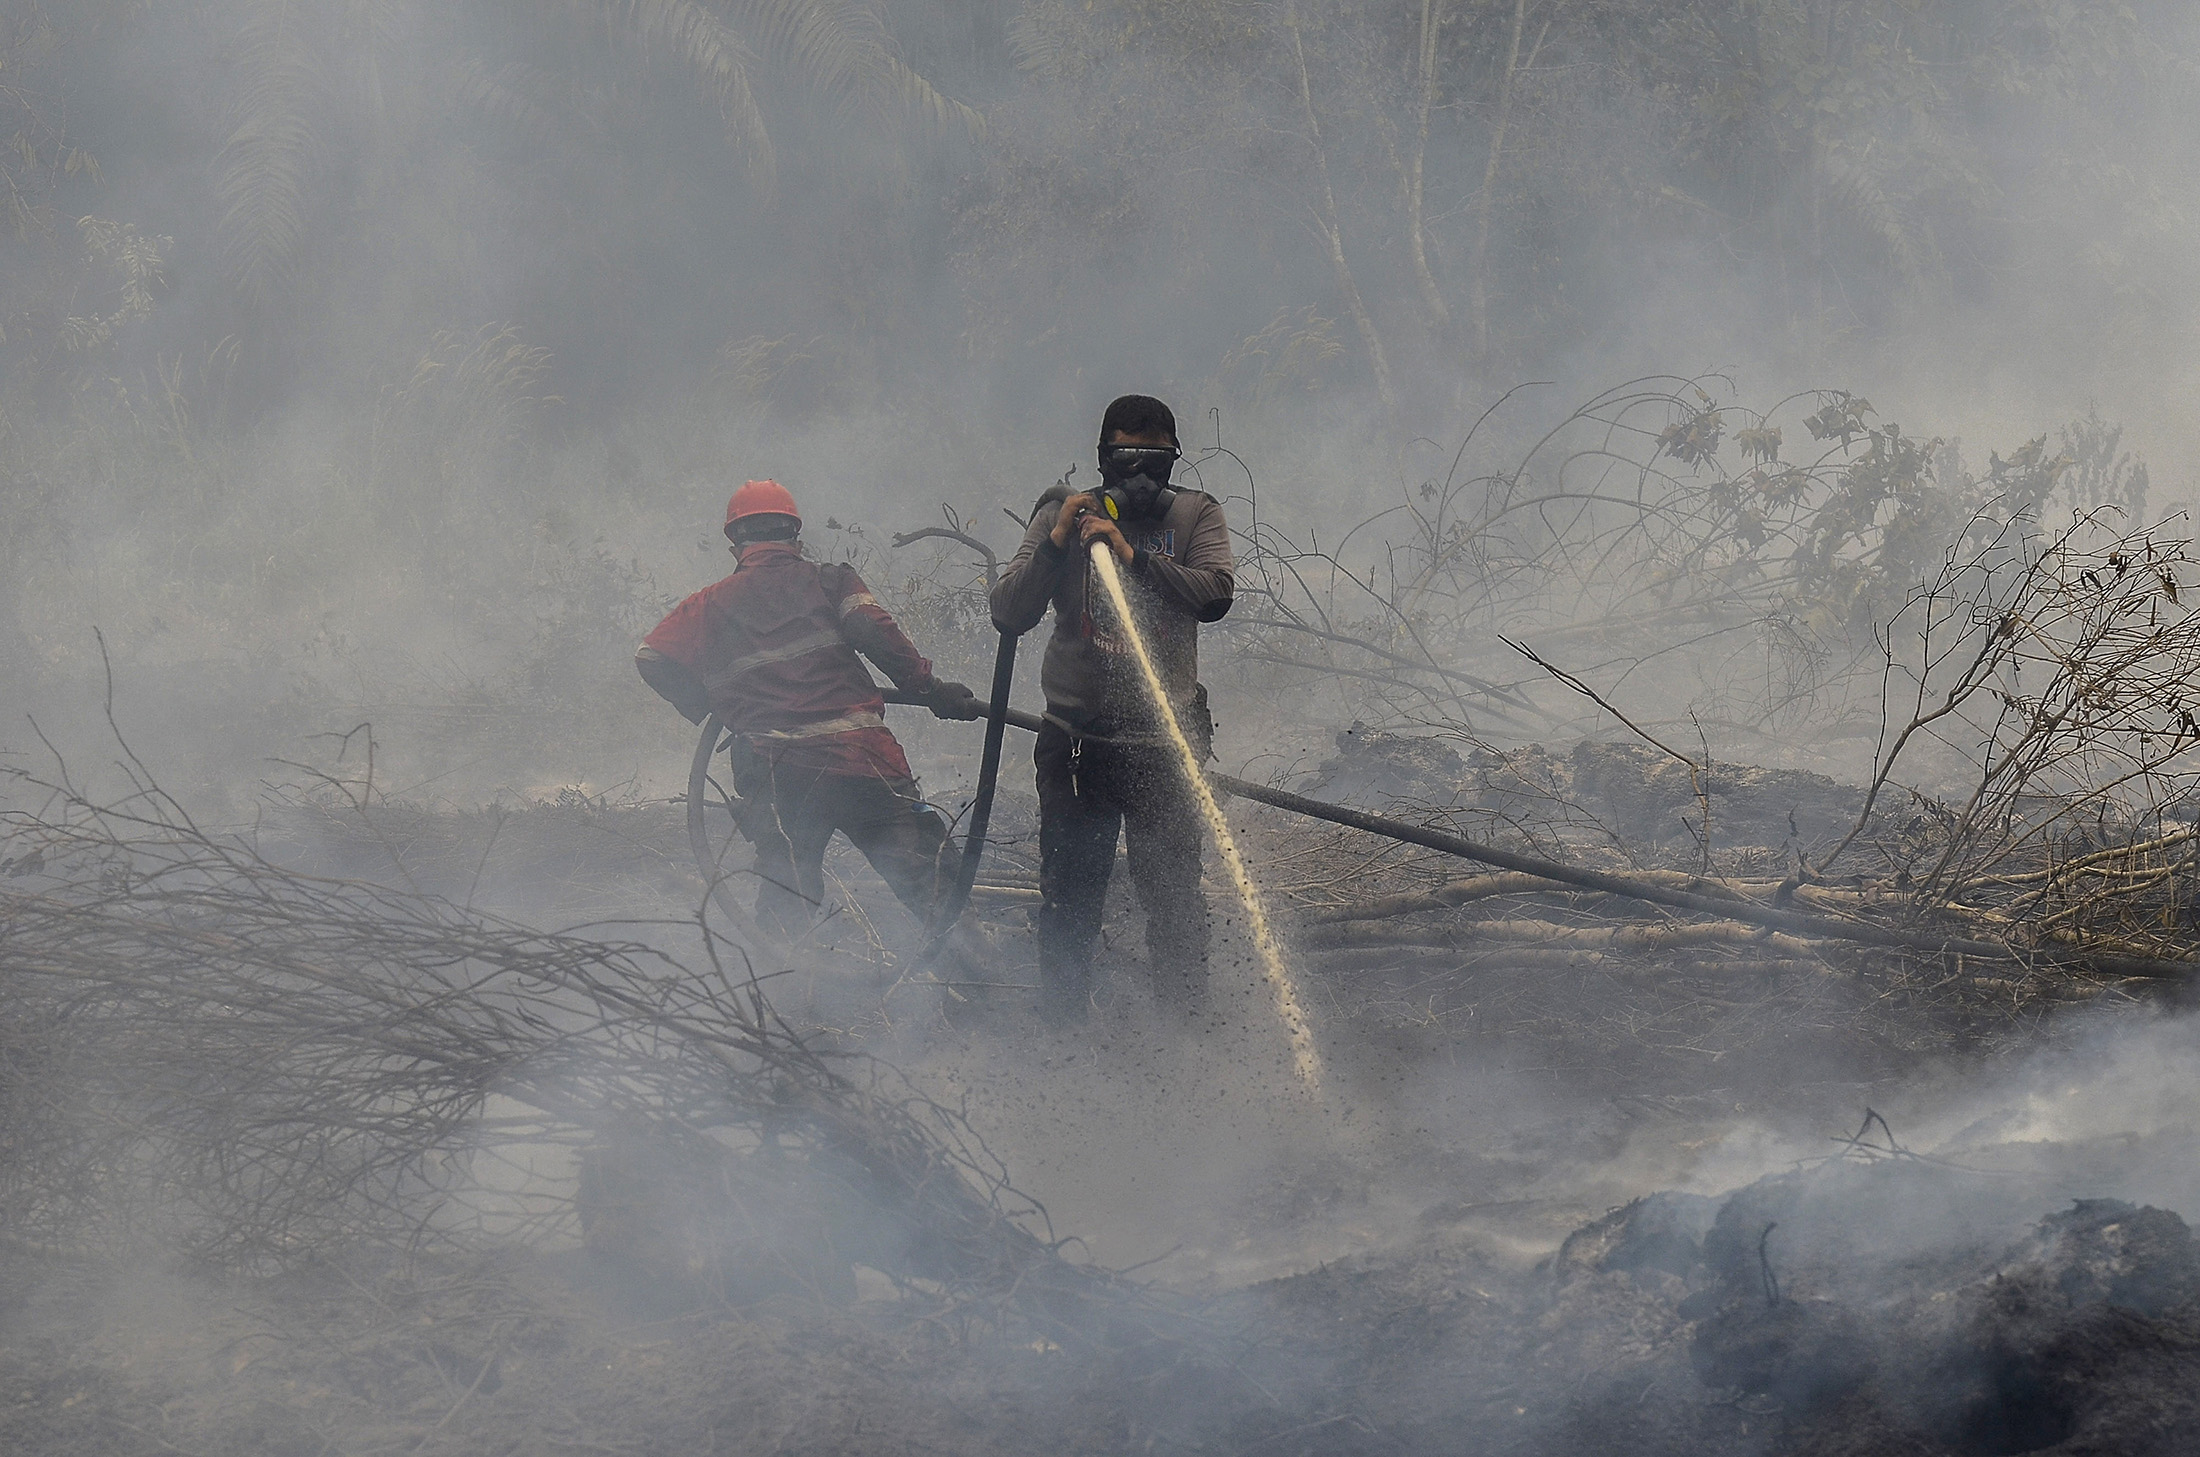 Wildfires in Indonesia Pose Economic Risk, Central Bank Says